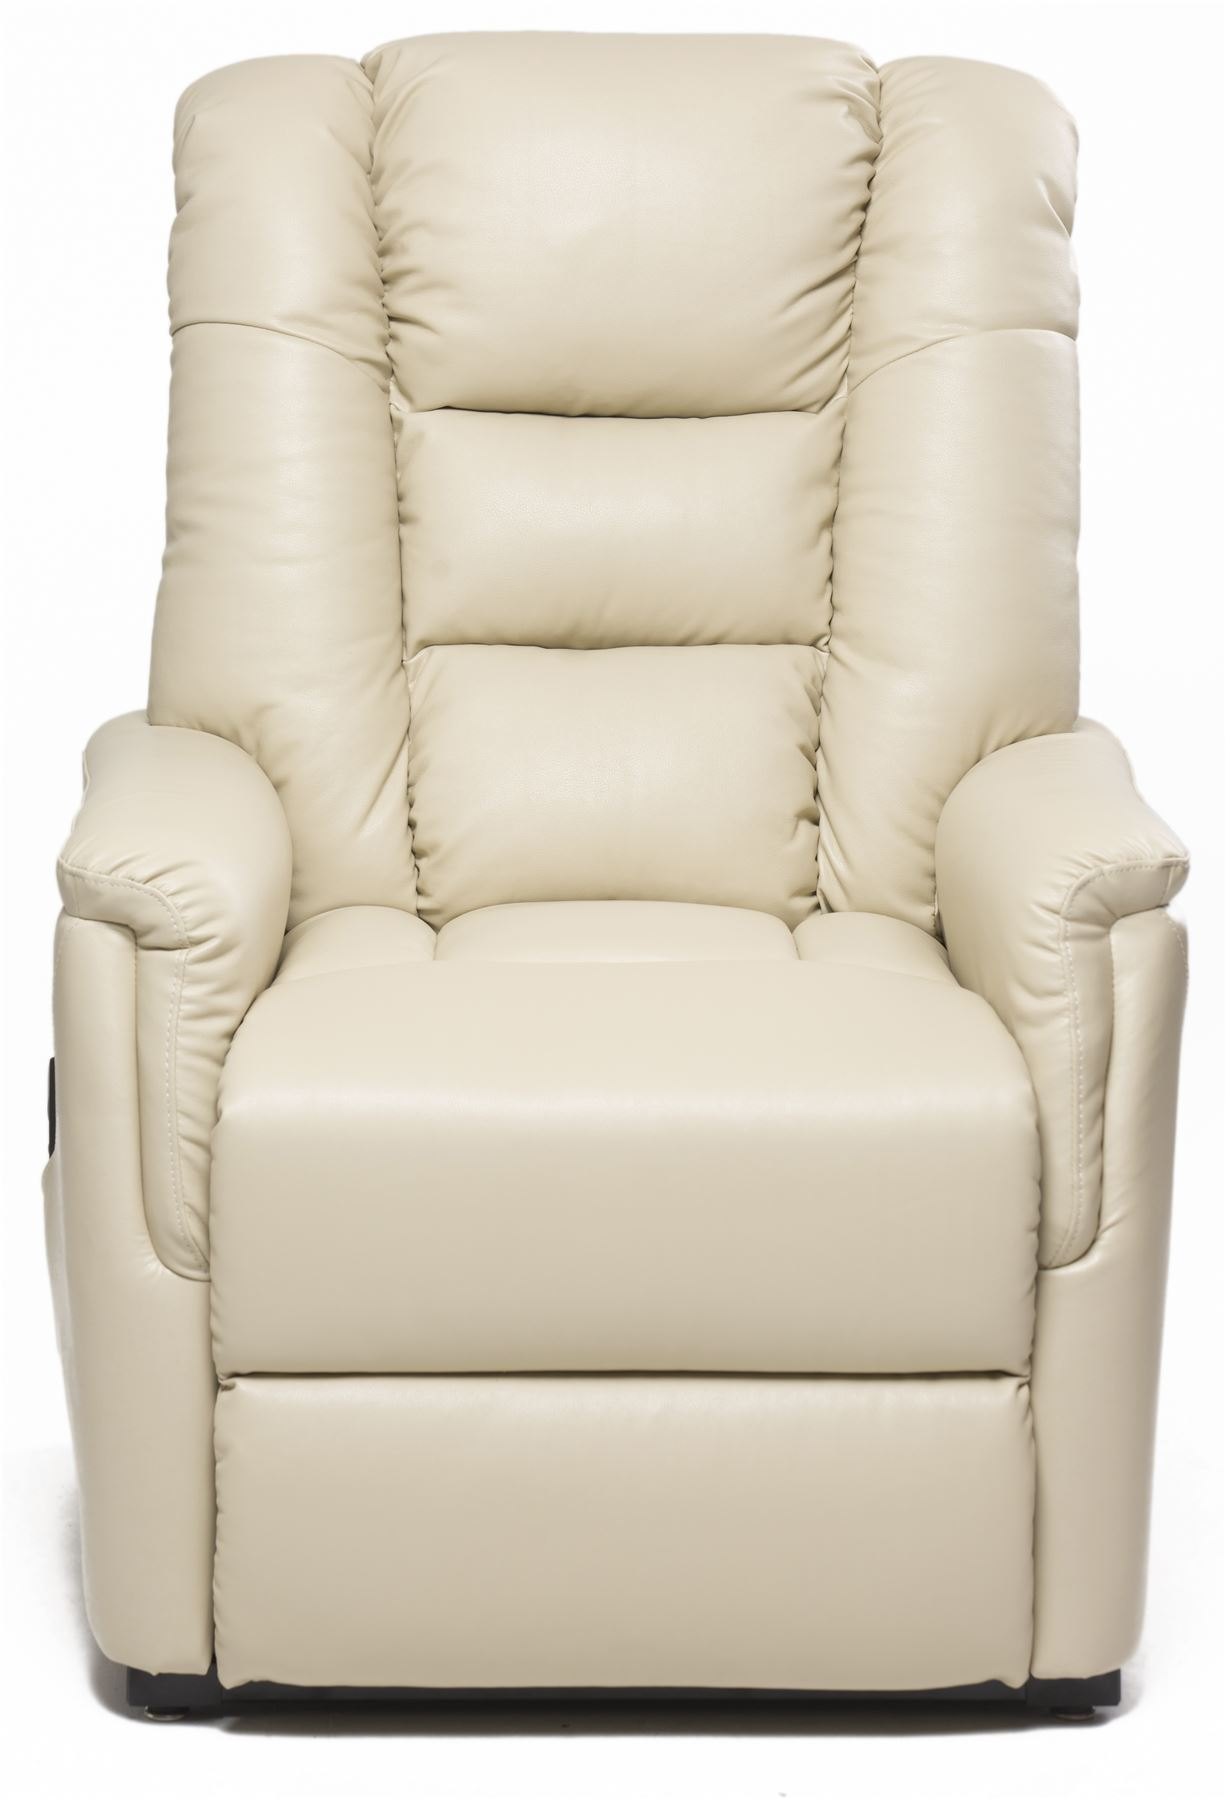 Details about Bradfield Cream Single Motor Riser Recliner Chair In Faux Leather Rise & Recline